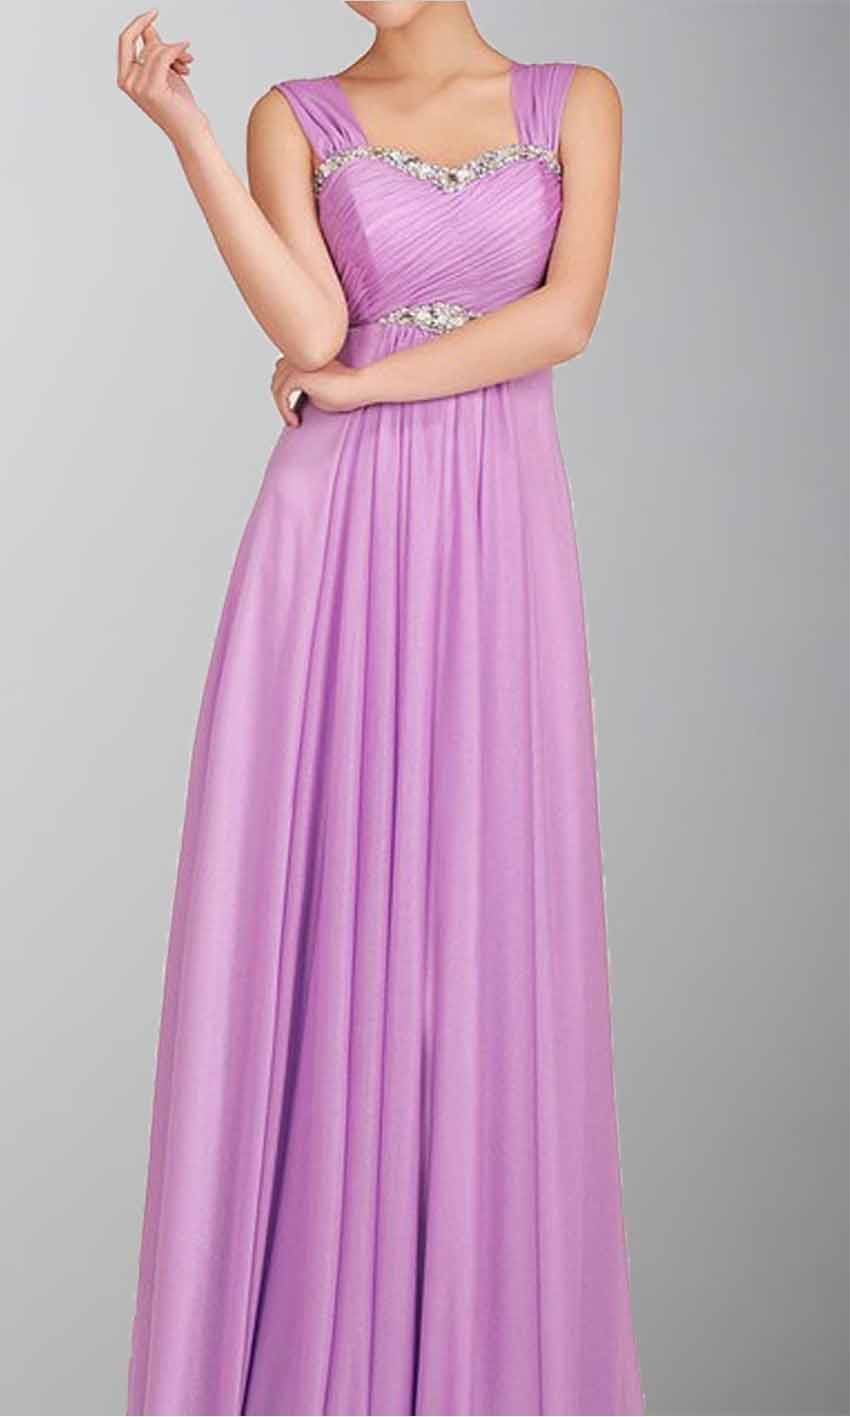 A-line Beaded Empire Waist Shoulder-straps Long Prom Dres KSP026 [KSP026] - £87.00 : Cheap Prom Dresses Uk, Bridesmaid Dresses, 2014 Prom & Evening Dresses, Look for cheap elegant prom dresses 2014, cocktail gowns, or dresses for special occasions? kissprom.co.uk offers various bridesmaid dresses, evening dress, free shipping to UK etc.